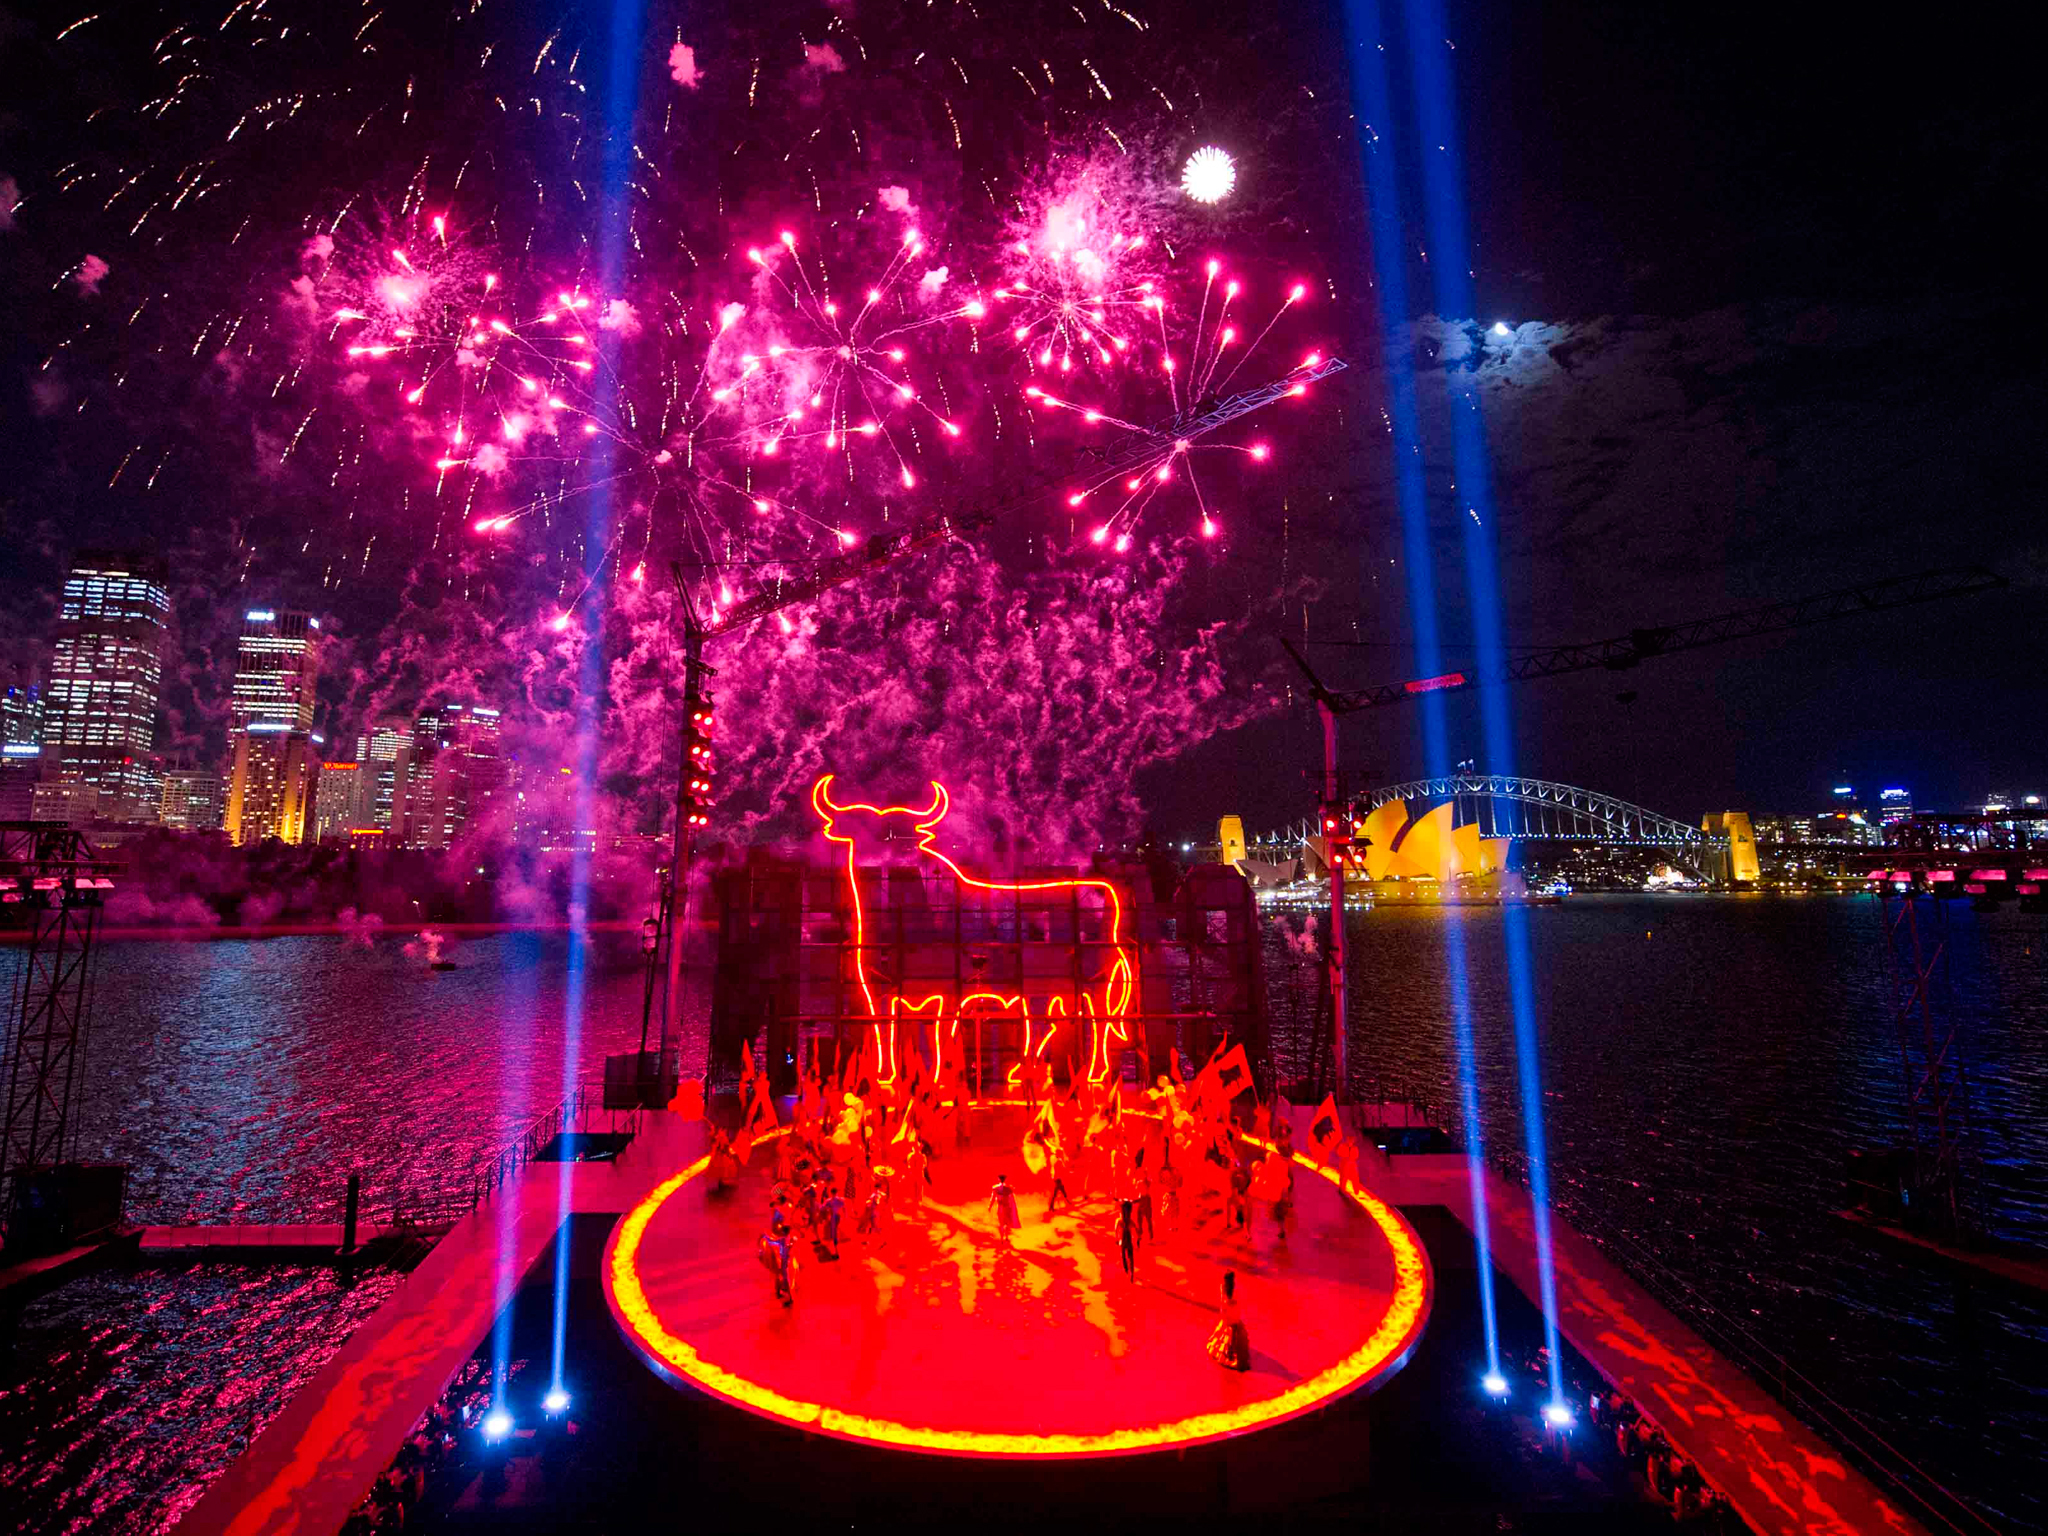 This five-star harbourside show is coming back